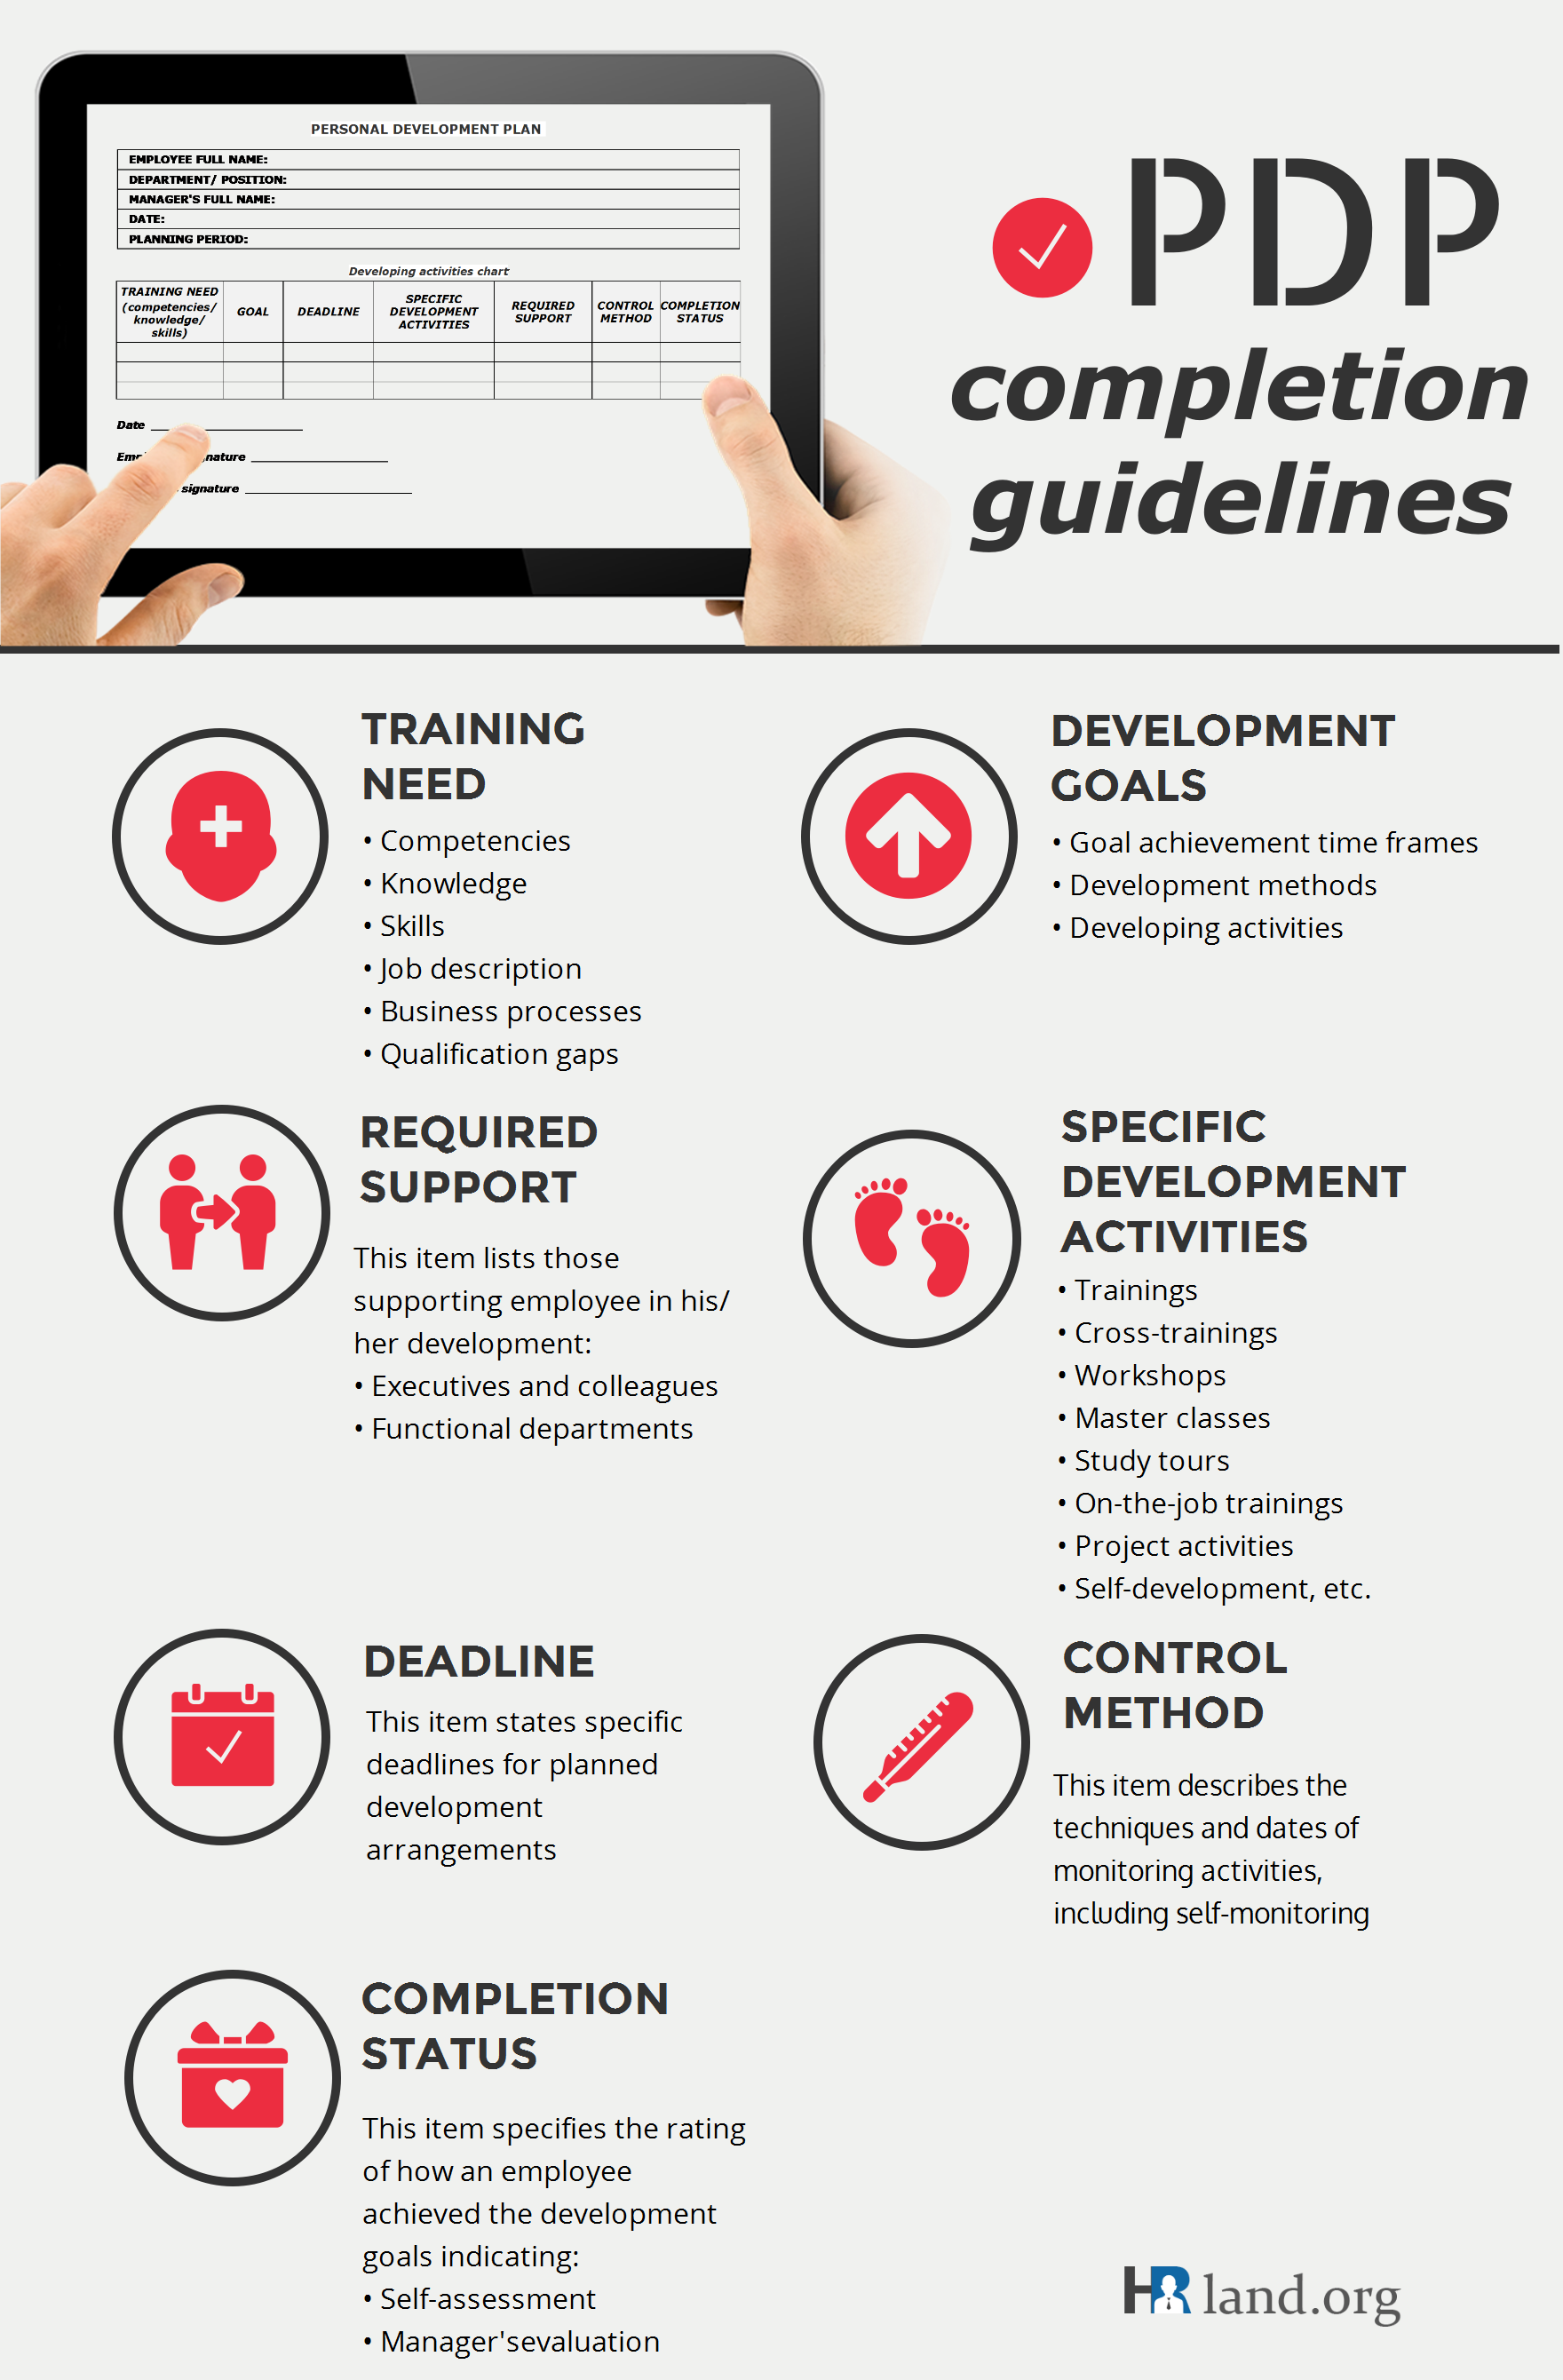 PDP guidelines